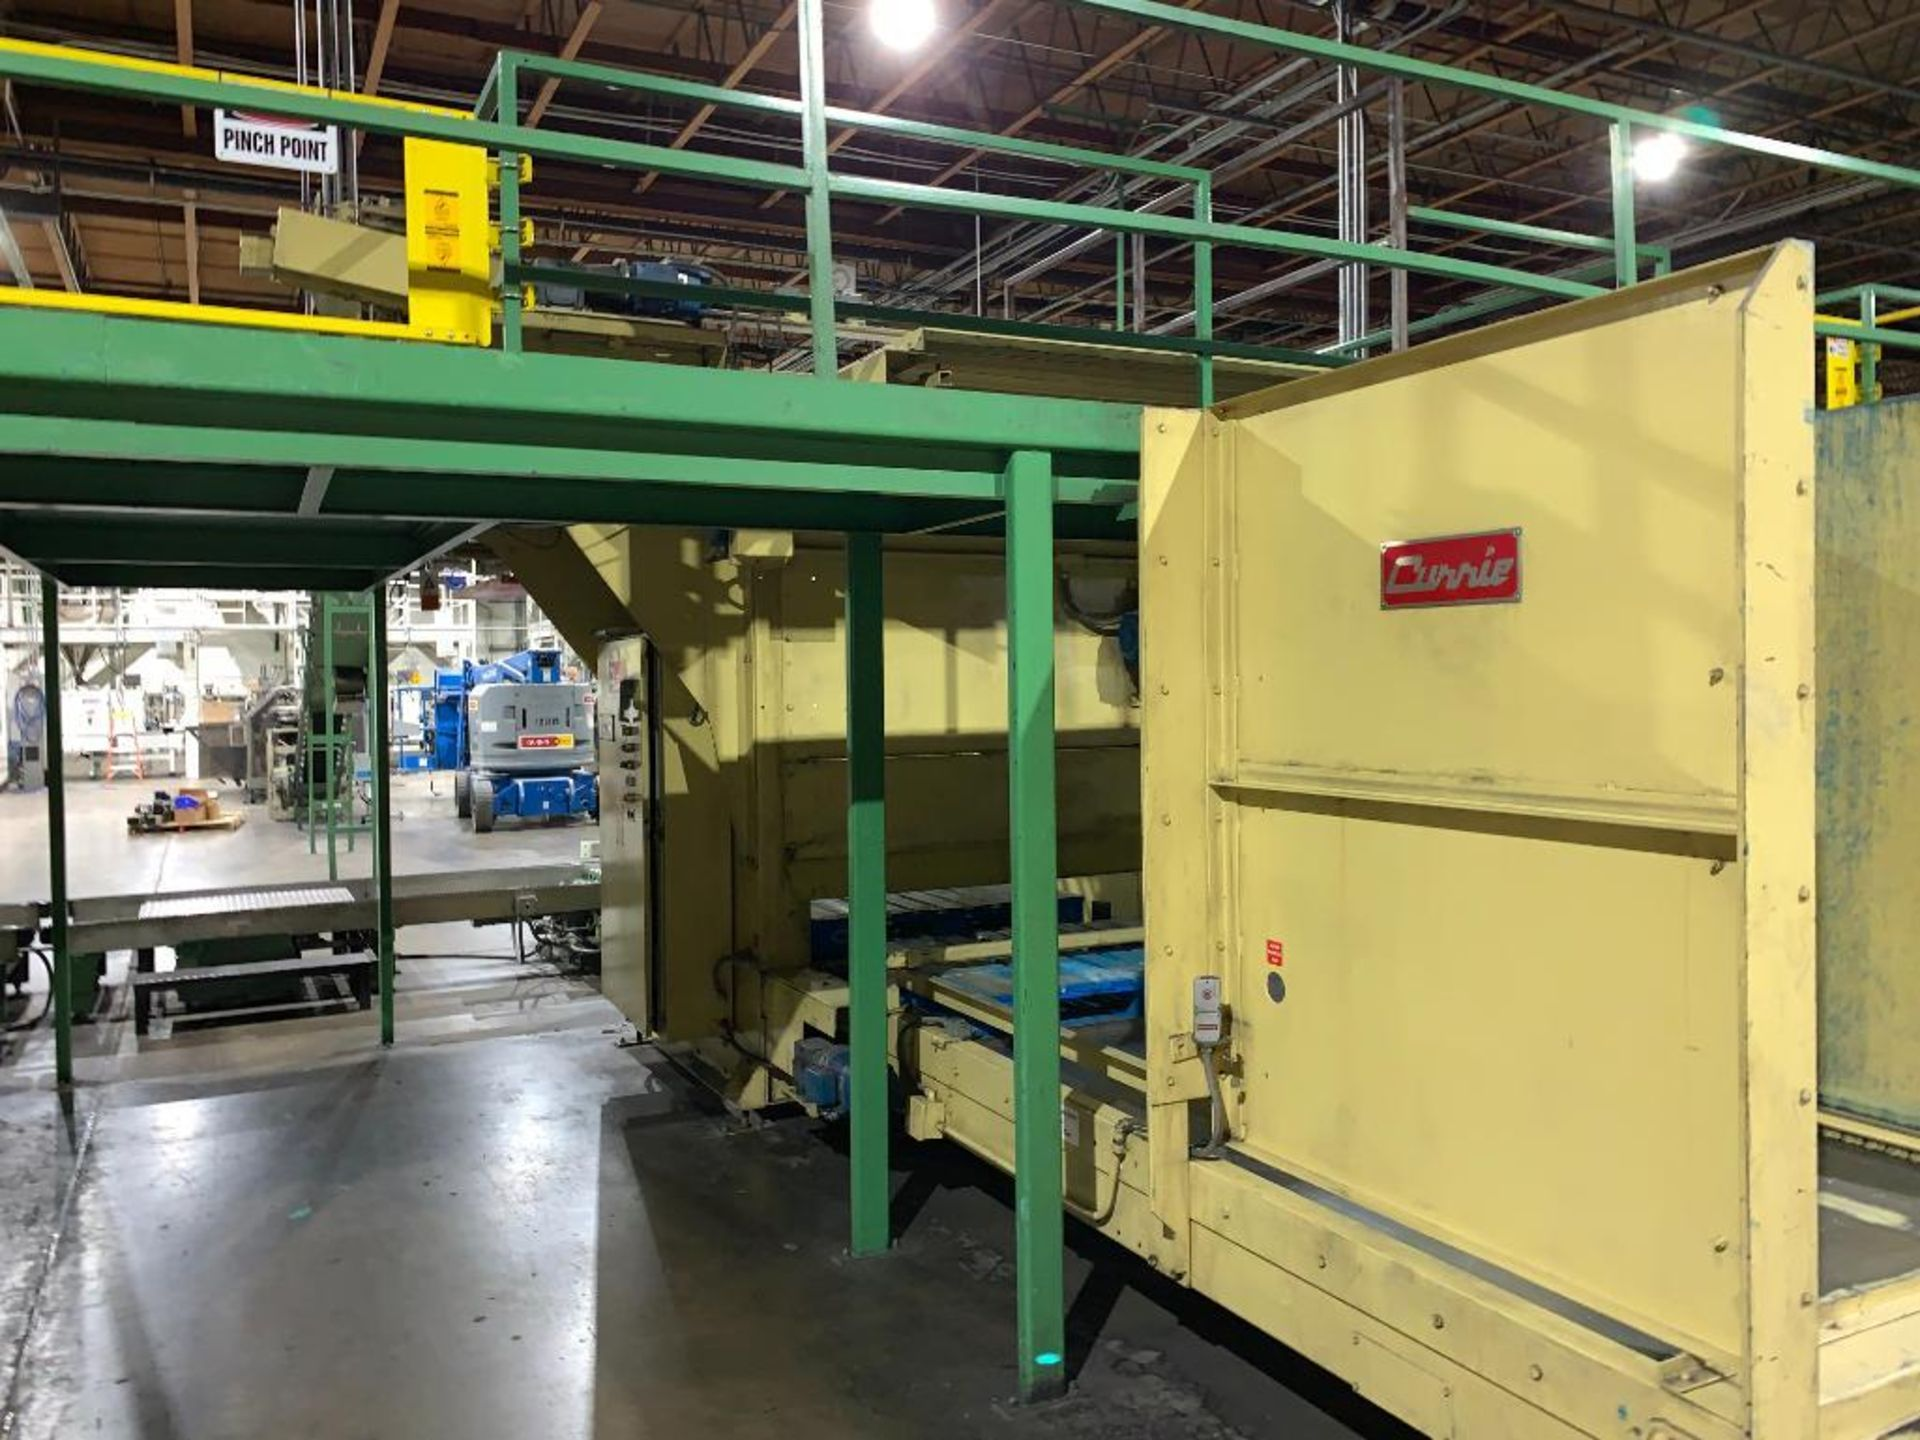 1992 Currie top to bottom palletizer, machine number LSP-5-1177 - Image 16 of 53